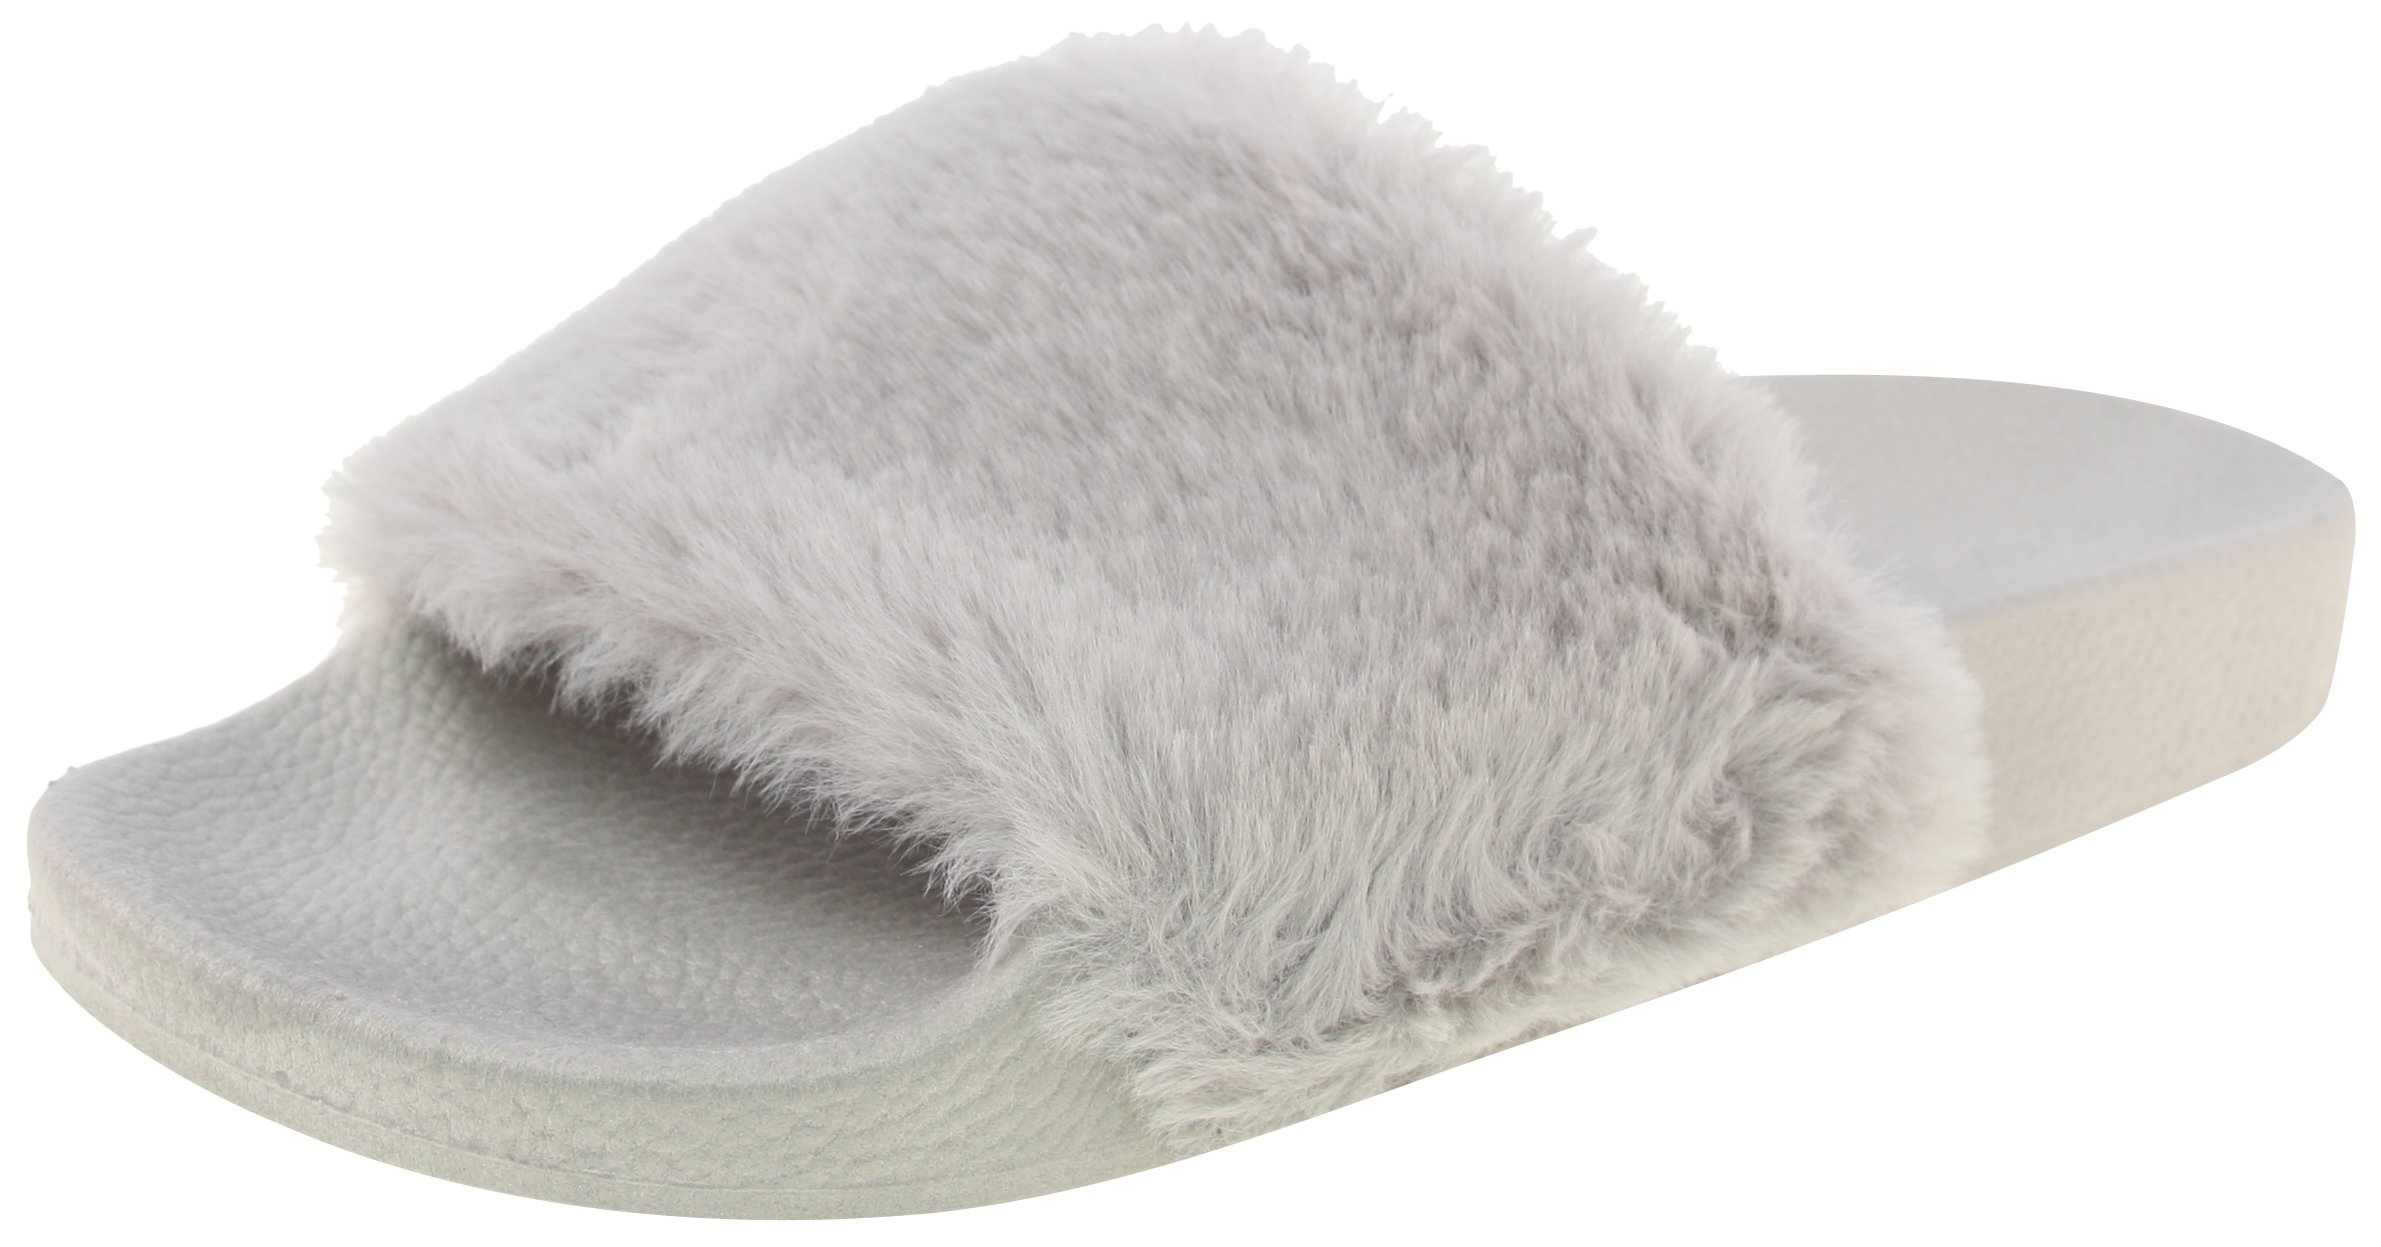 Top Moda Pillow 1 Women Faux Fur Softy Slip On Slider Sandals,Grey,6.5